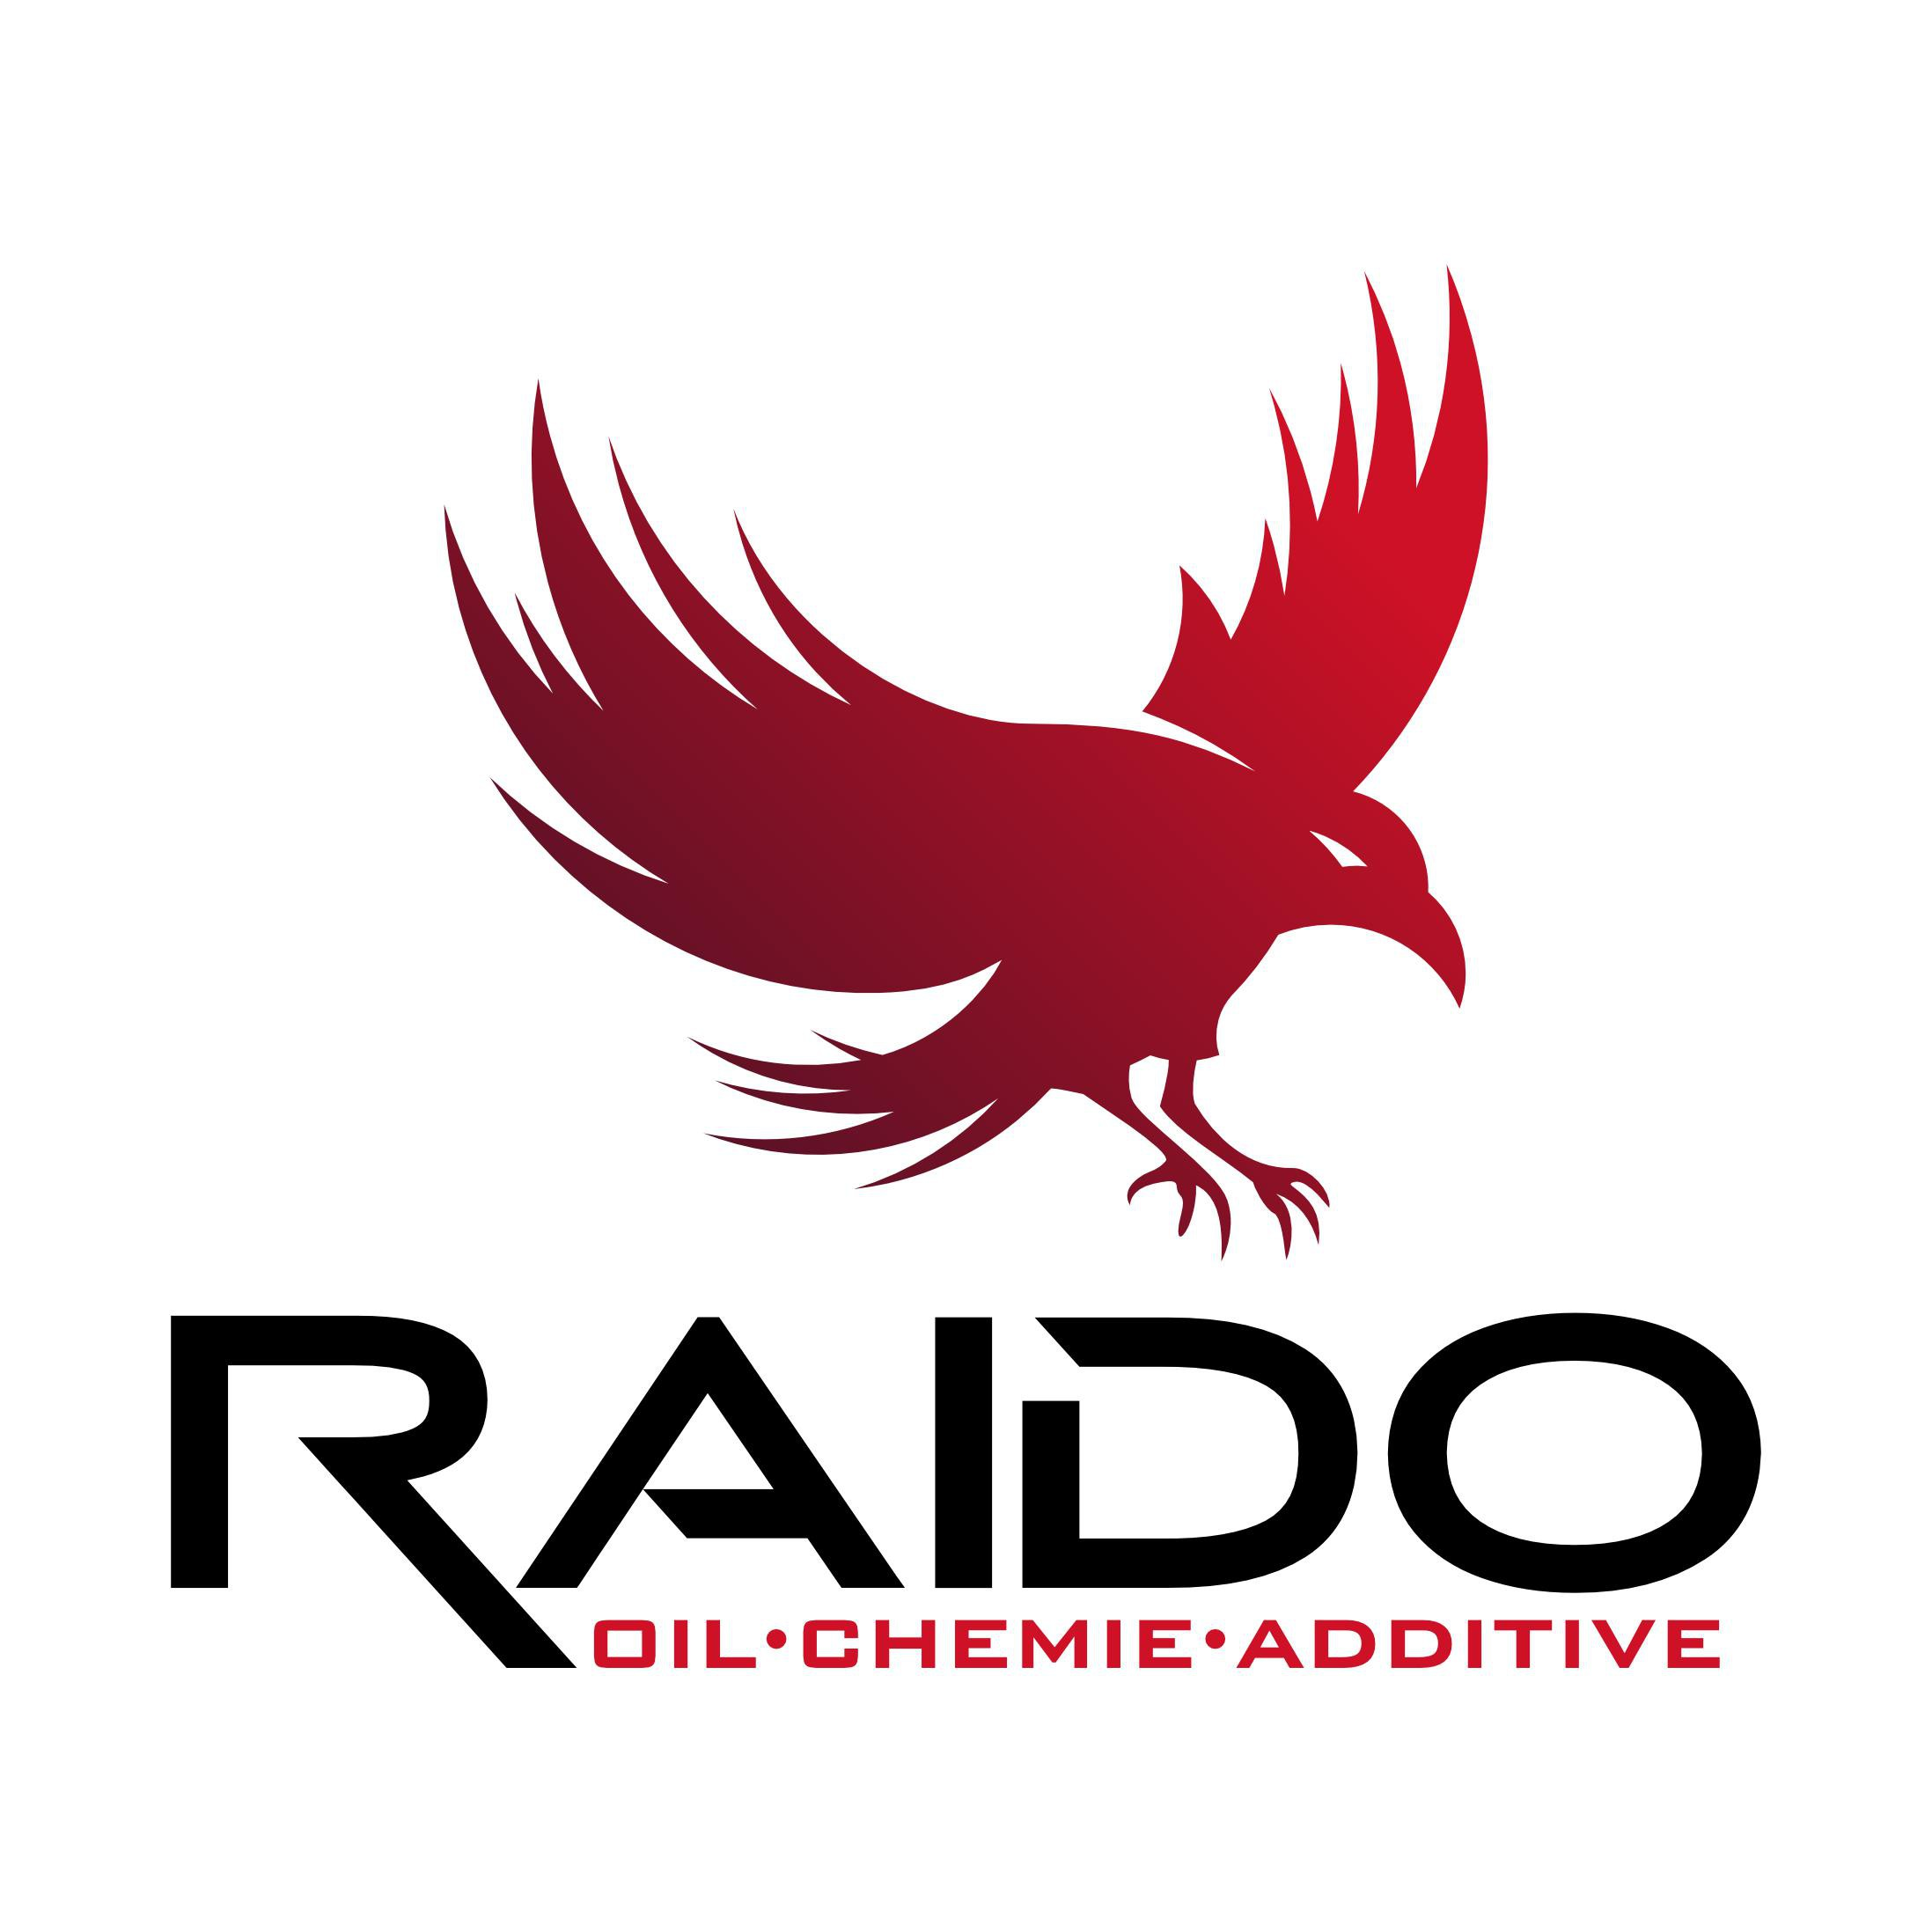 RAIDO OIL CHEMIE ADDITIVE - NDTL GmbH